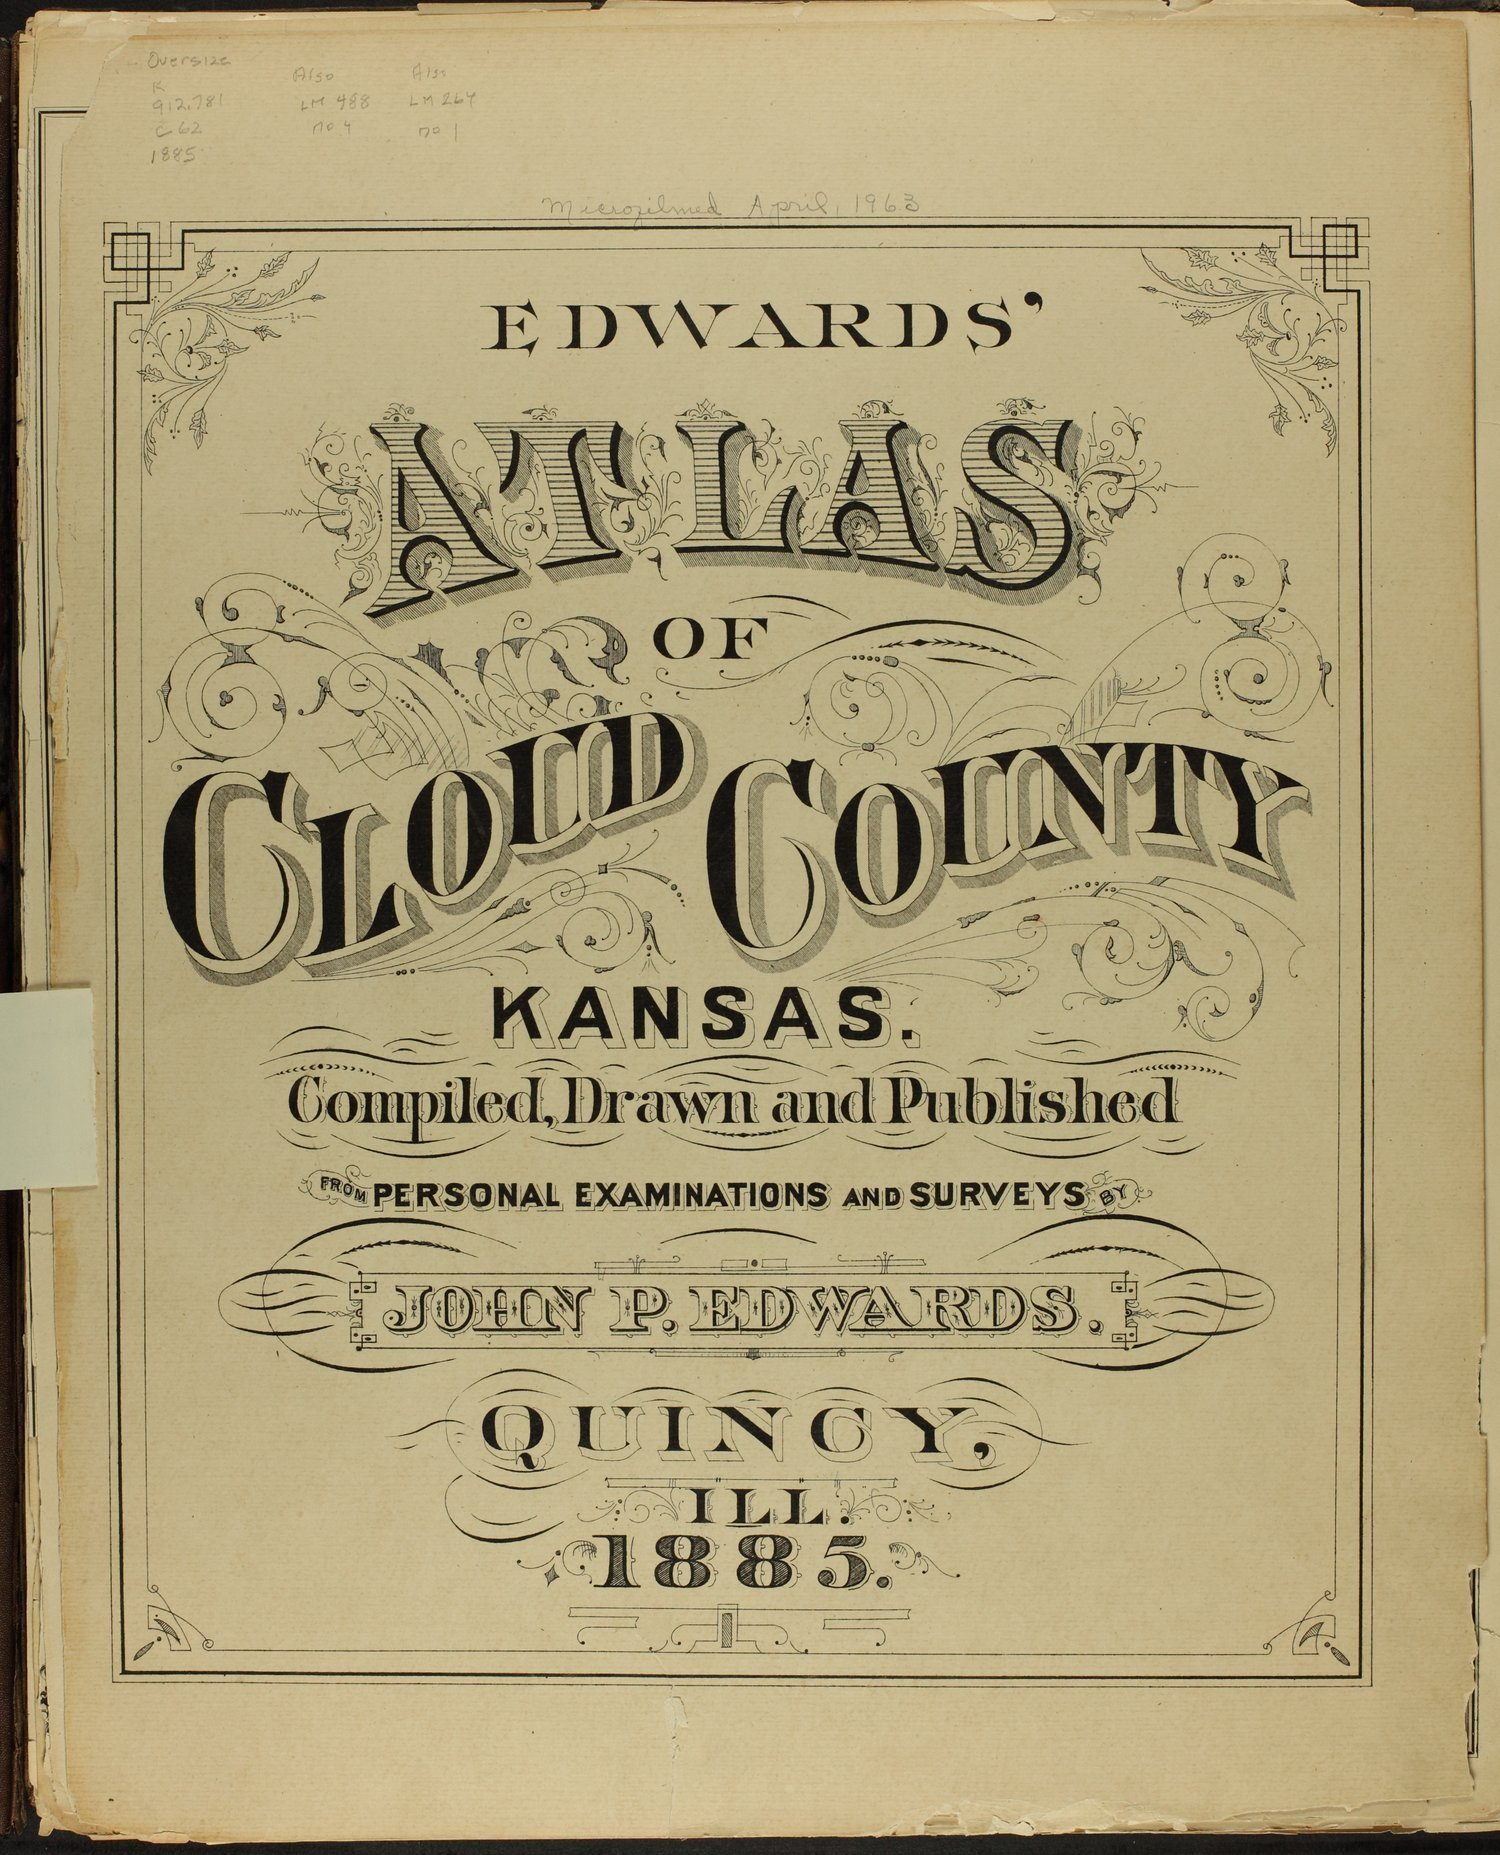 Edward's atlas of Cloud County, Kansas - Title Page (b)